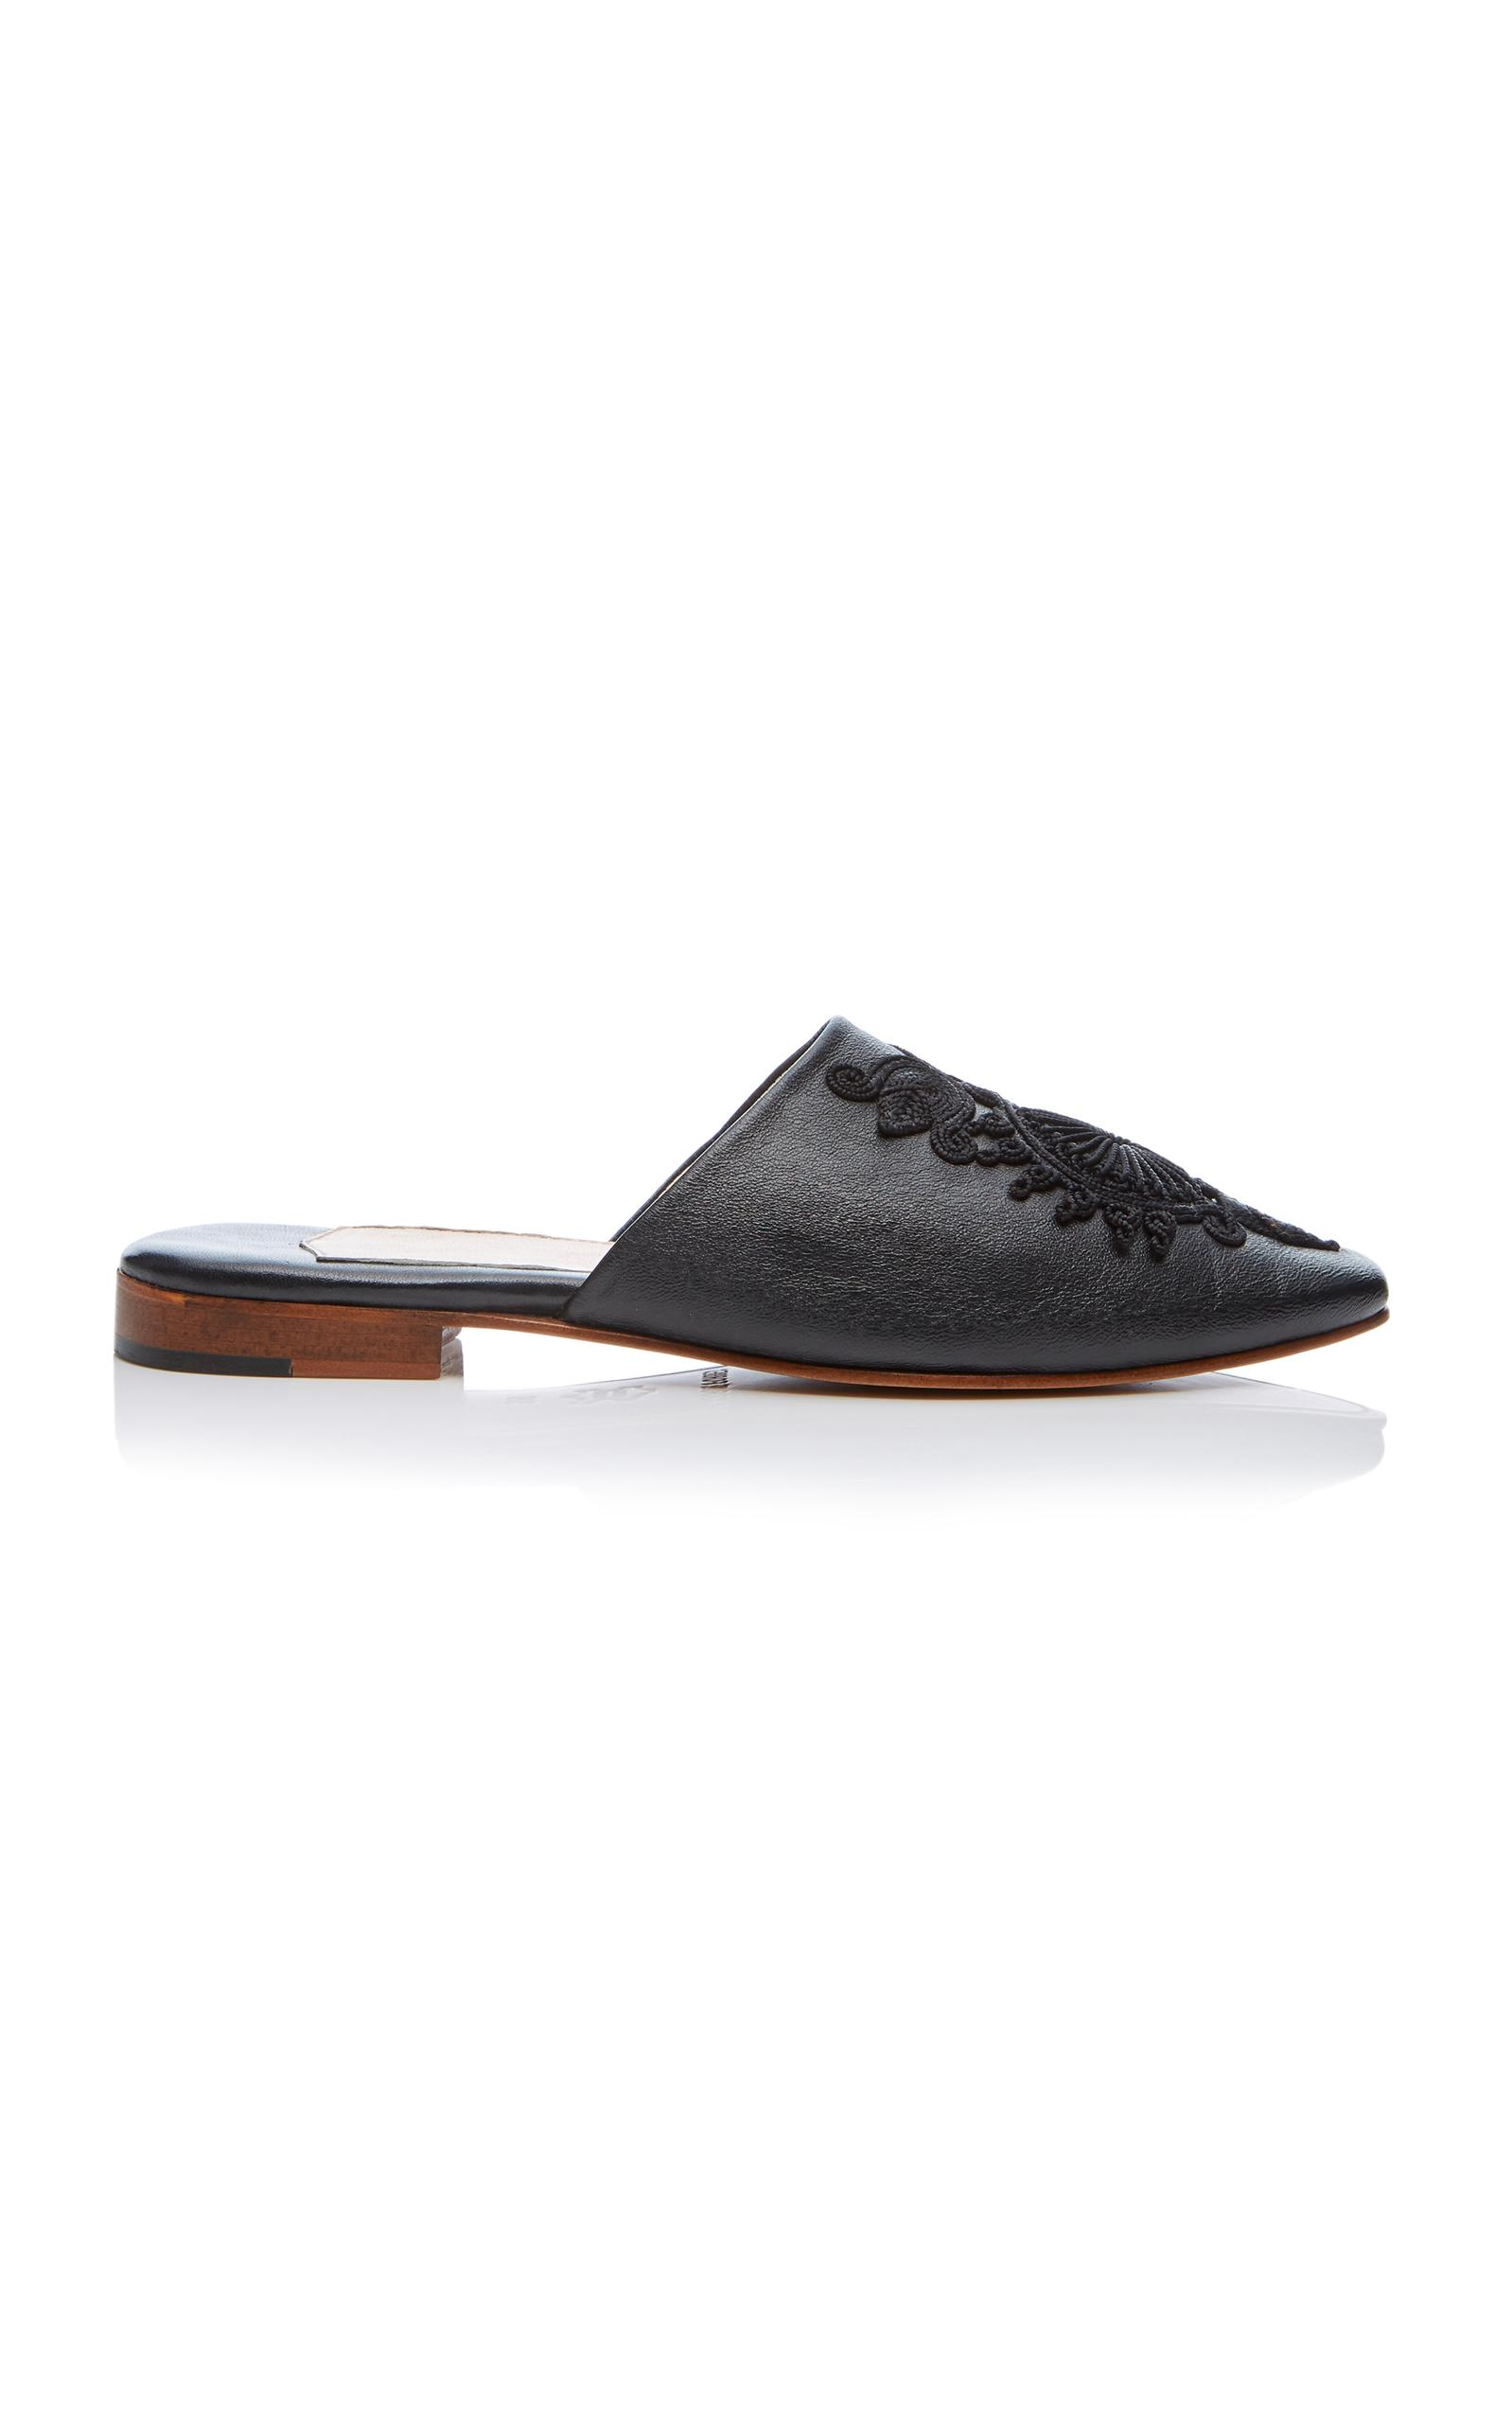 f4f0d26125a Lyst - Carrie Forbes Kenza Mule in Black